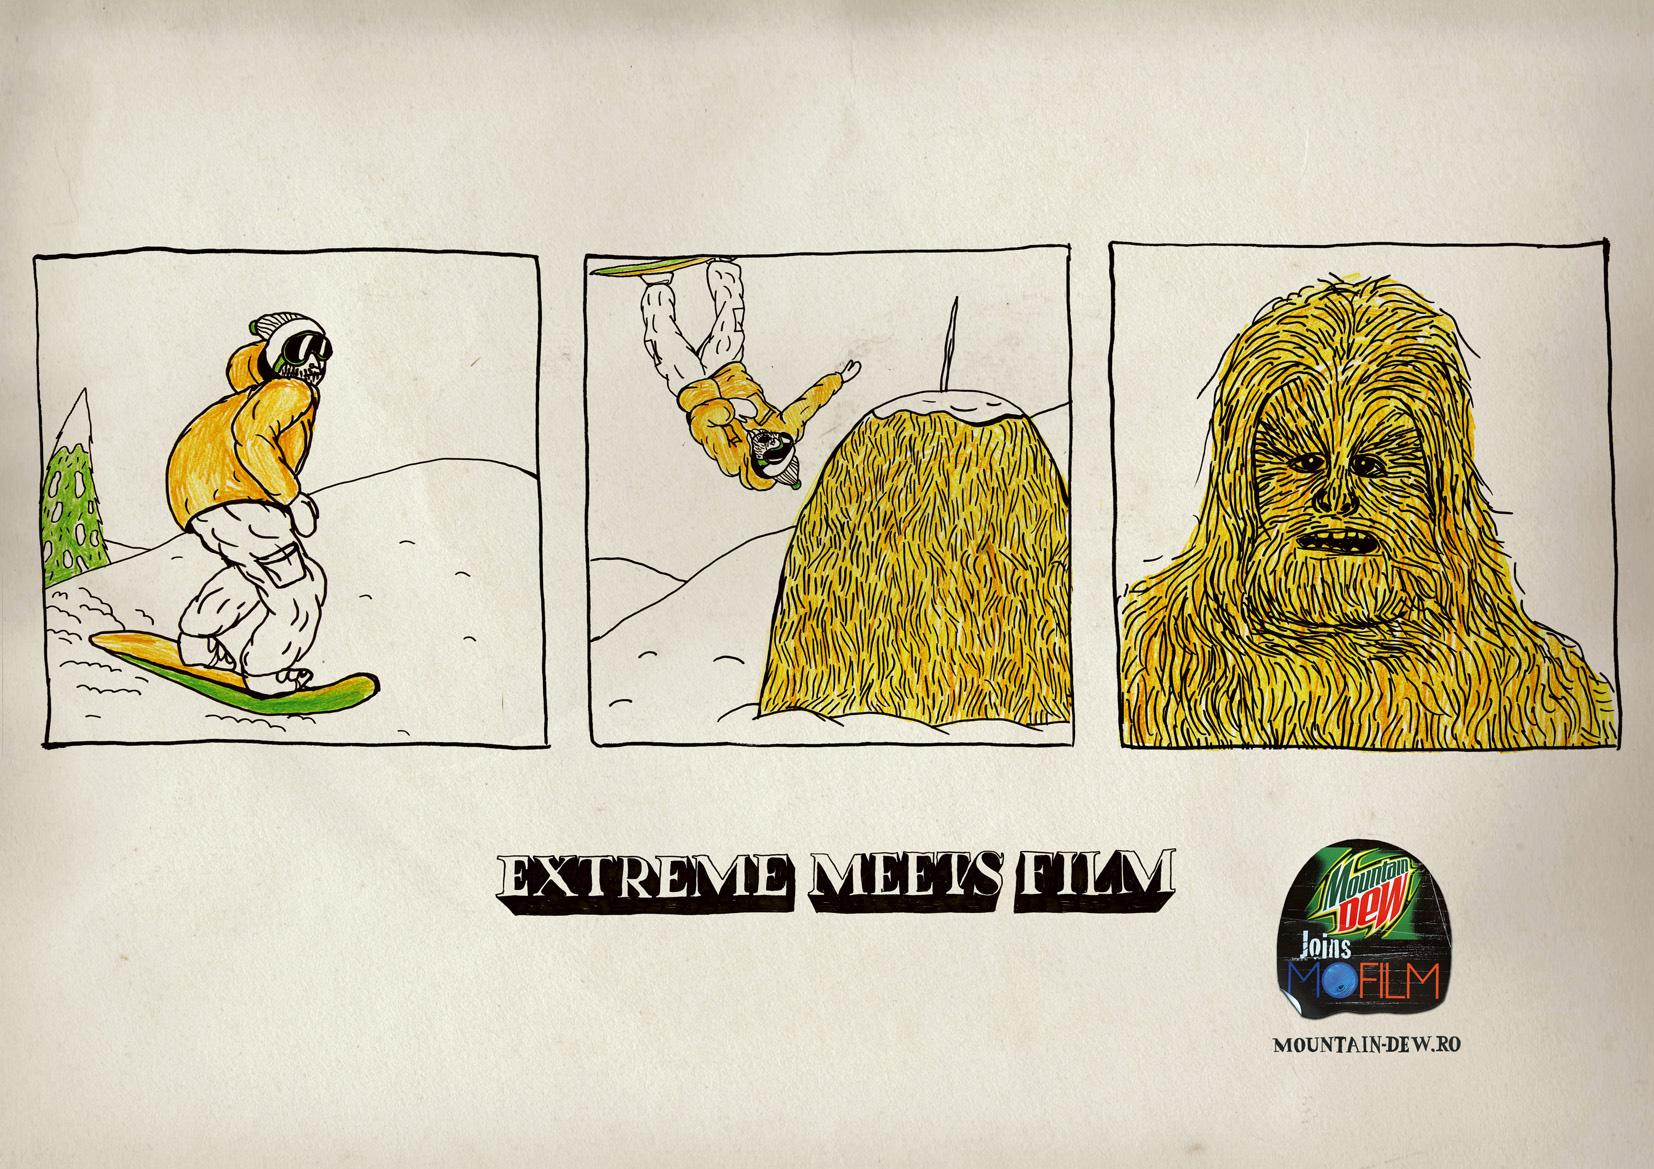 Mountain Dew Print Ad -  MD joins MOfilm, Chewbacca